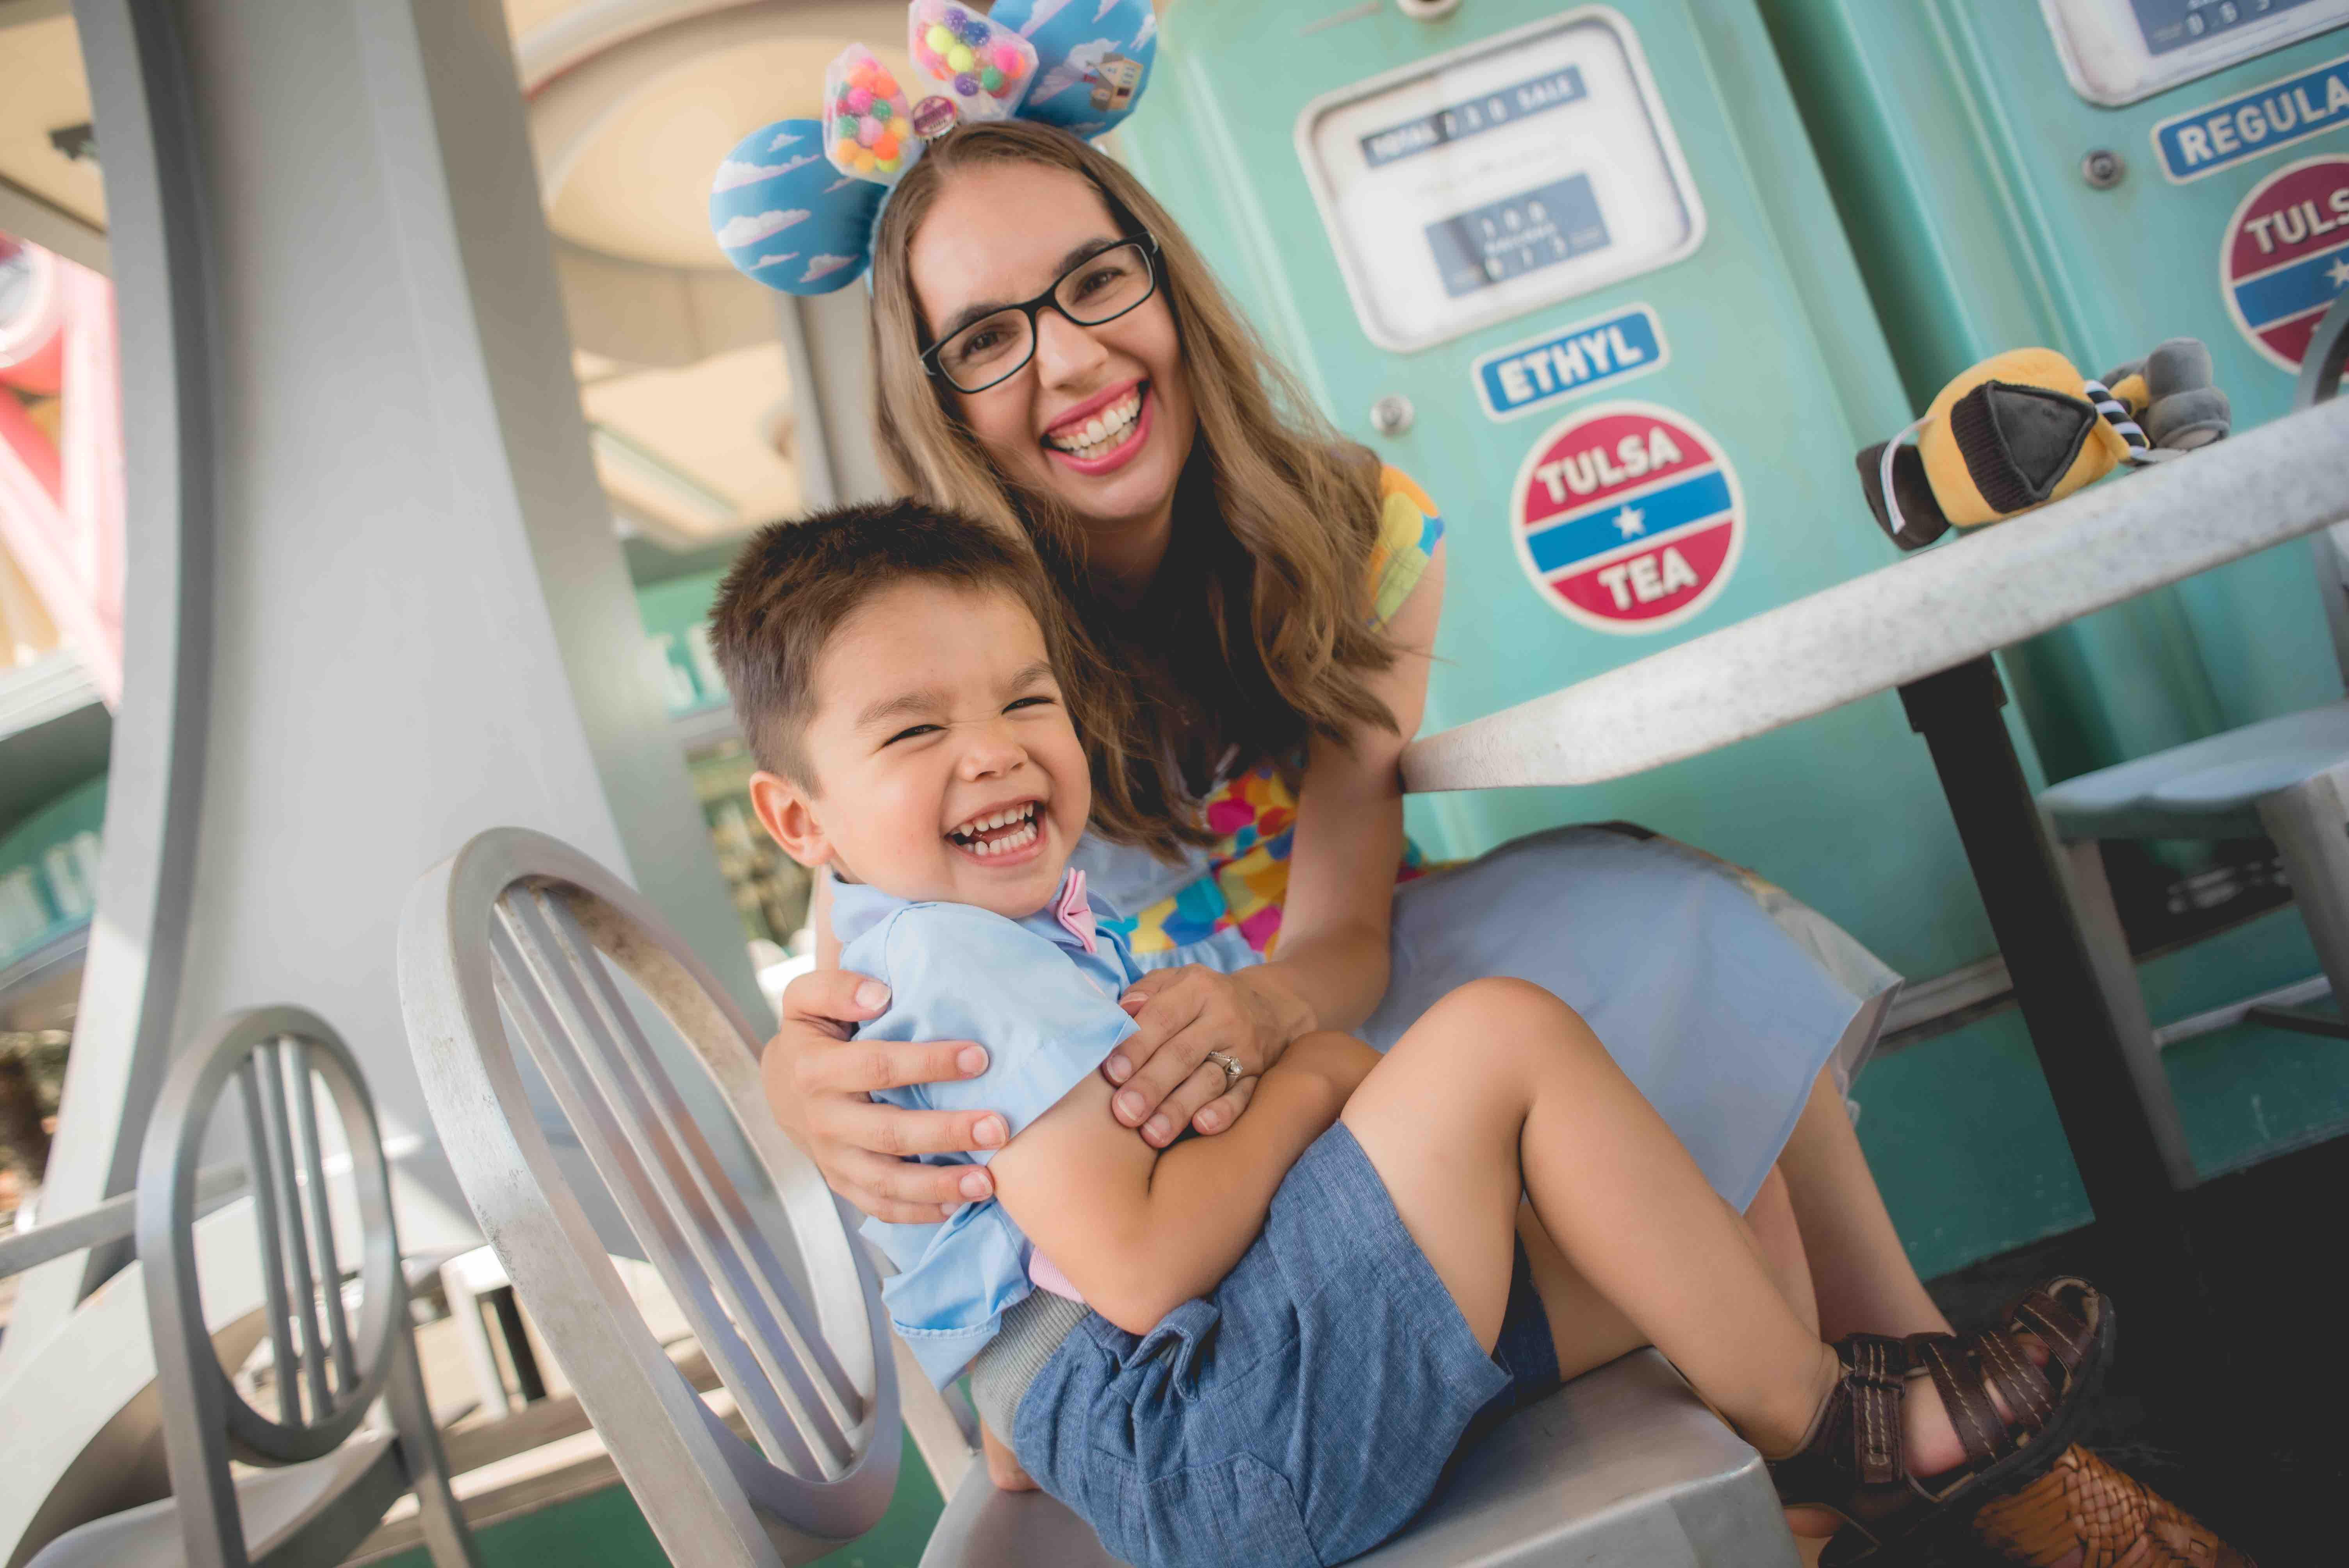 How to Do Disneyland with Toddlers, tips and itinerary featured by top US Disney blogger, Marcie and the Mouse | Disneyland mobile ordering saves time at Disneyland